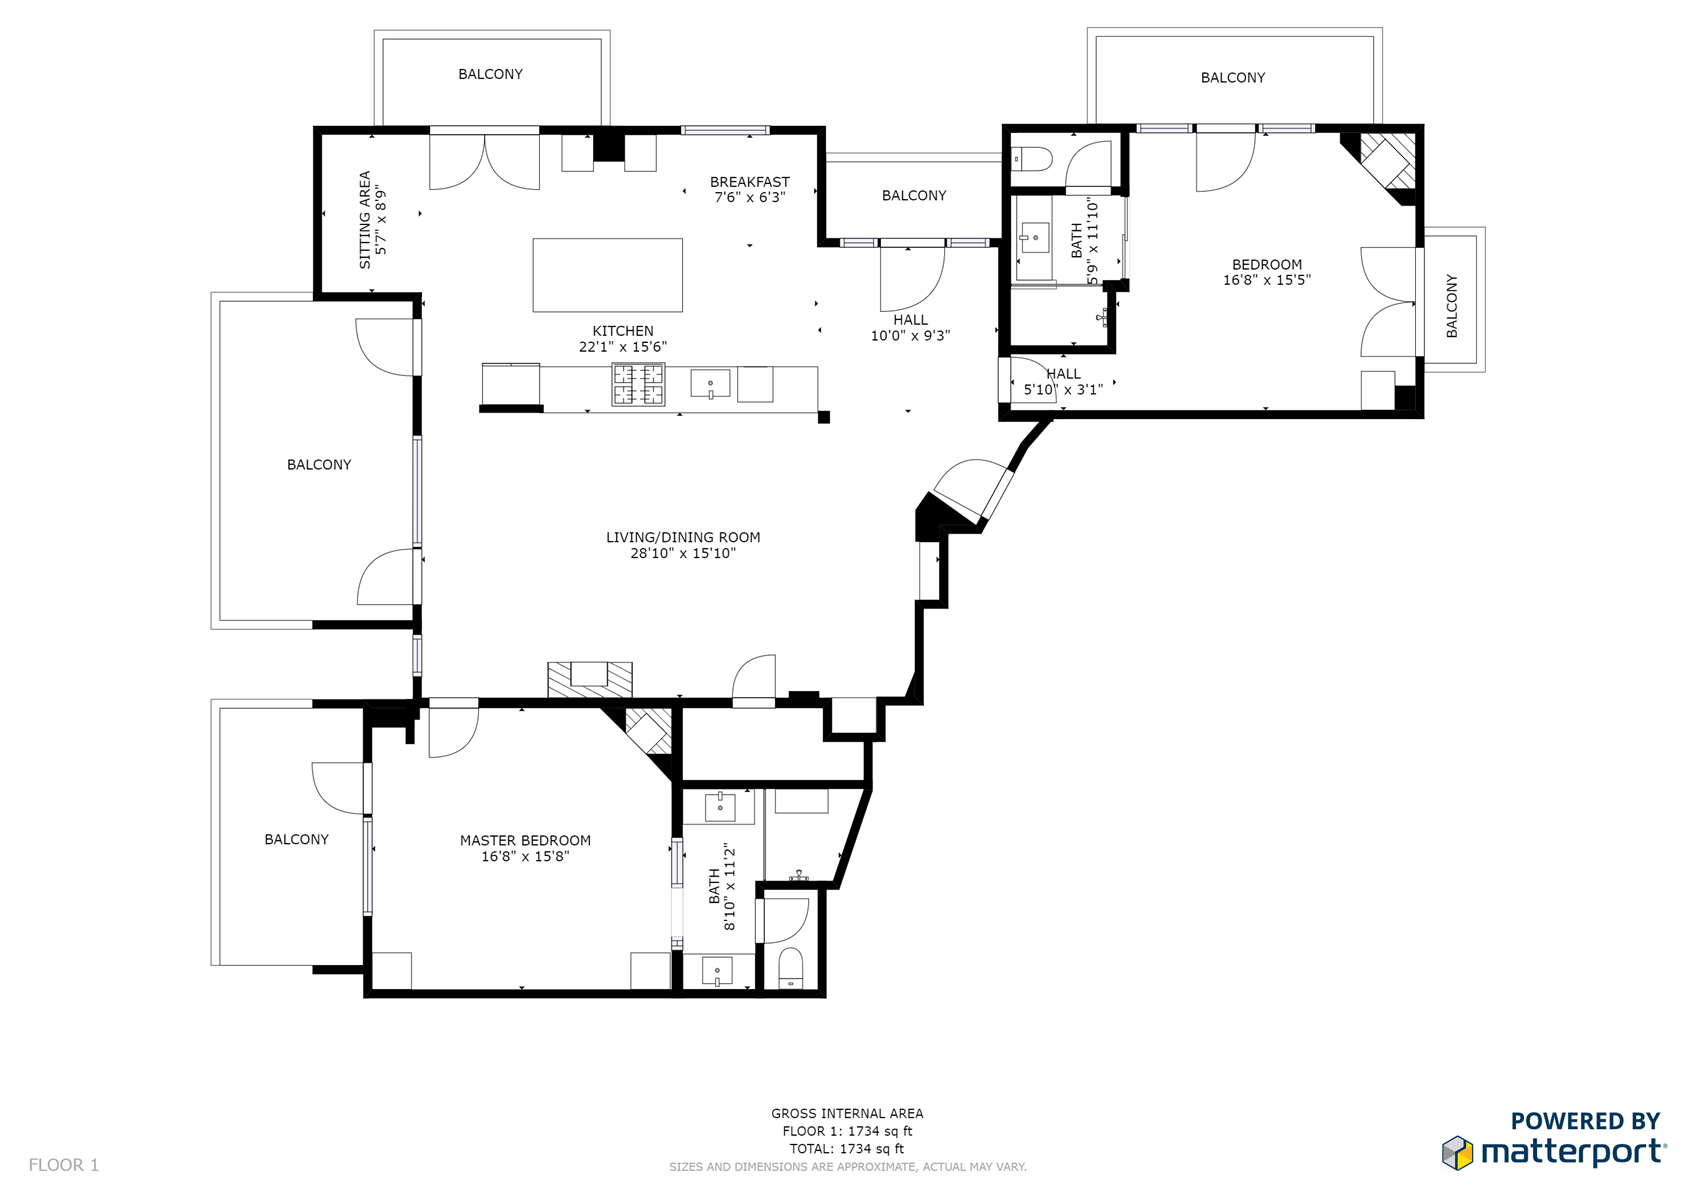 Floor Plan for The Lincoln 503, 2 Bed / 2 Bath, Luxury Loft Style Condo